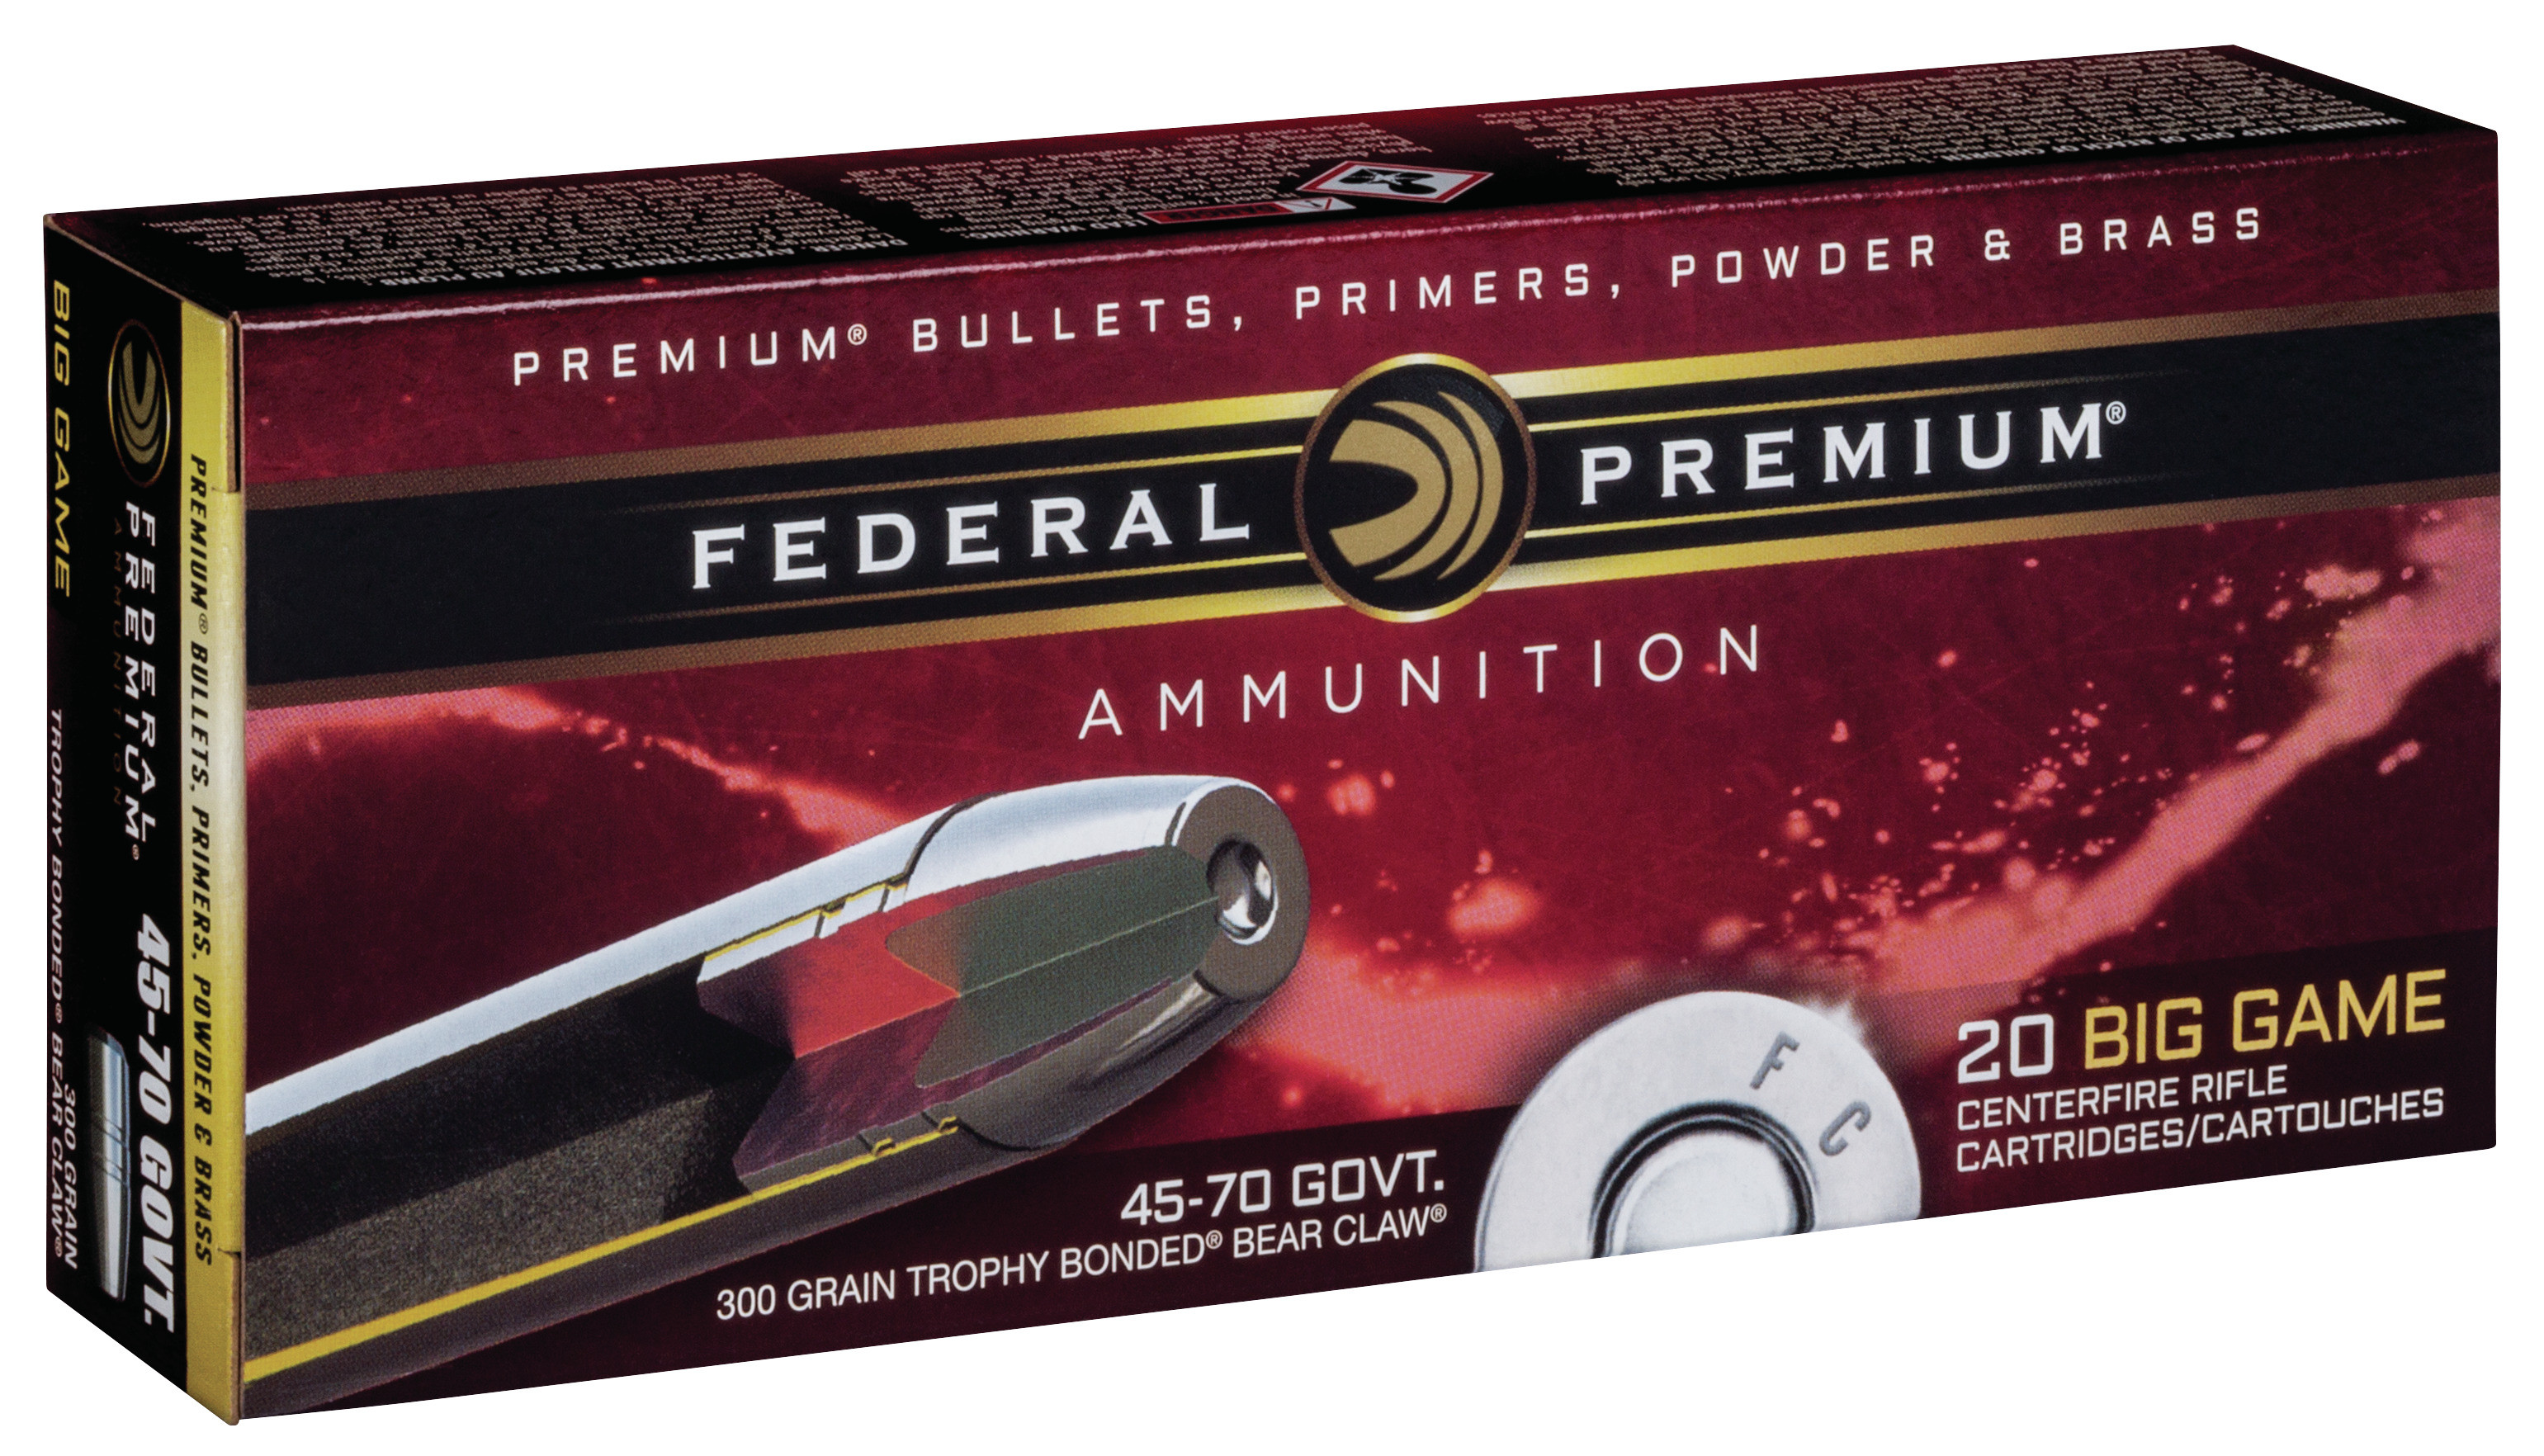 Federal Premium Vital-Shok Ammunition 45-70 Government 300GR Trophy Bonded Bear Claw Round Nose Per 20